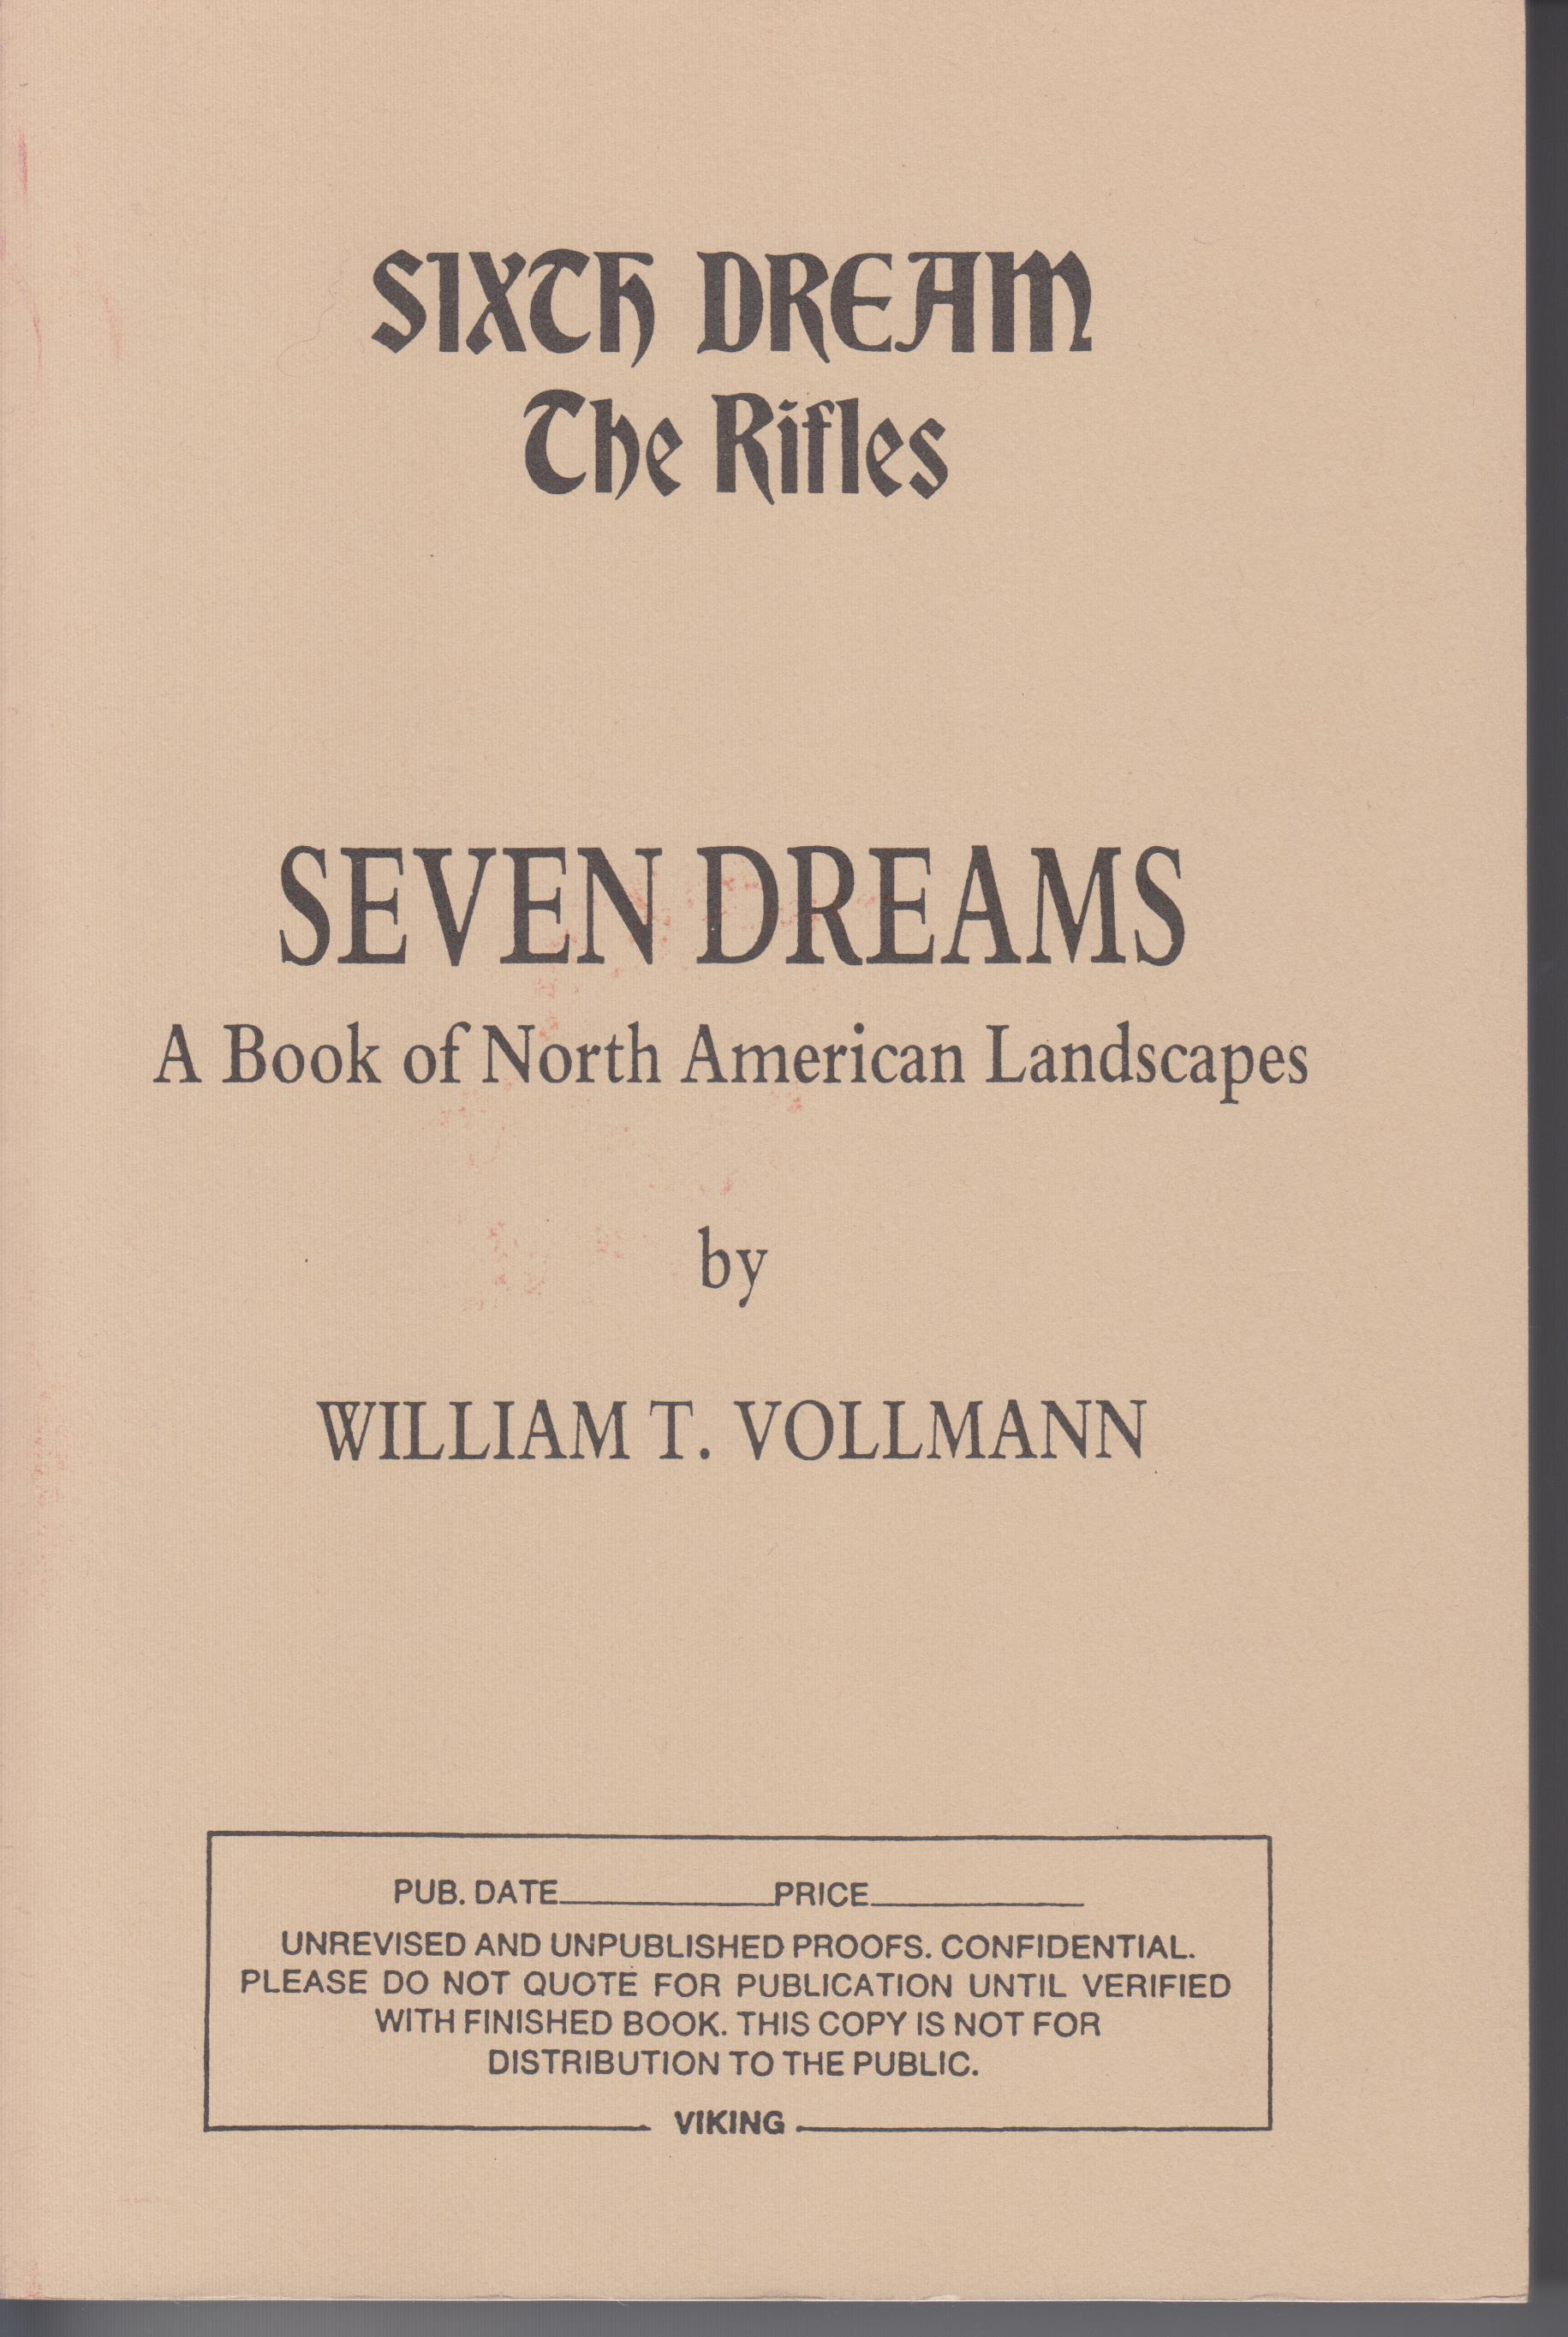 Image for The Rifles (Sixth Dream of Seven Dreams. a Book of the North American Landscapes